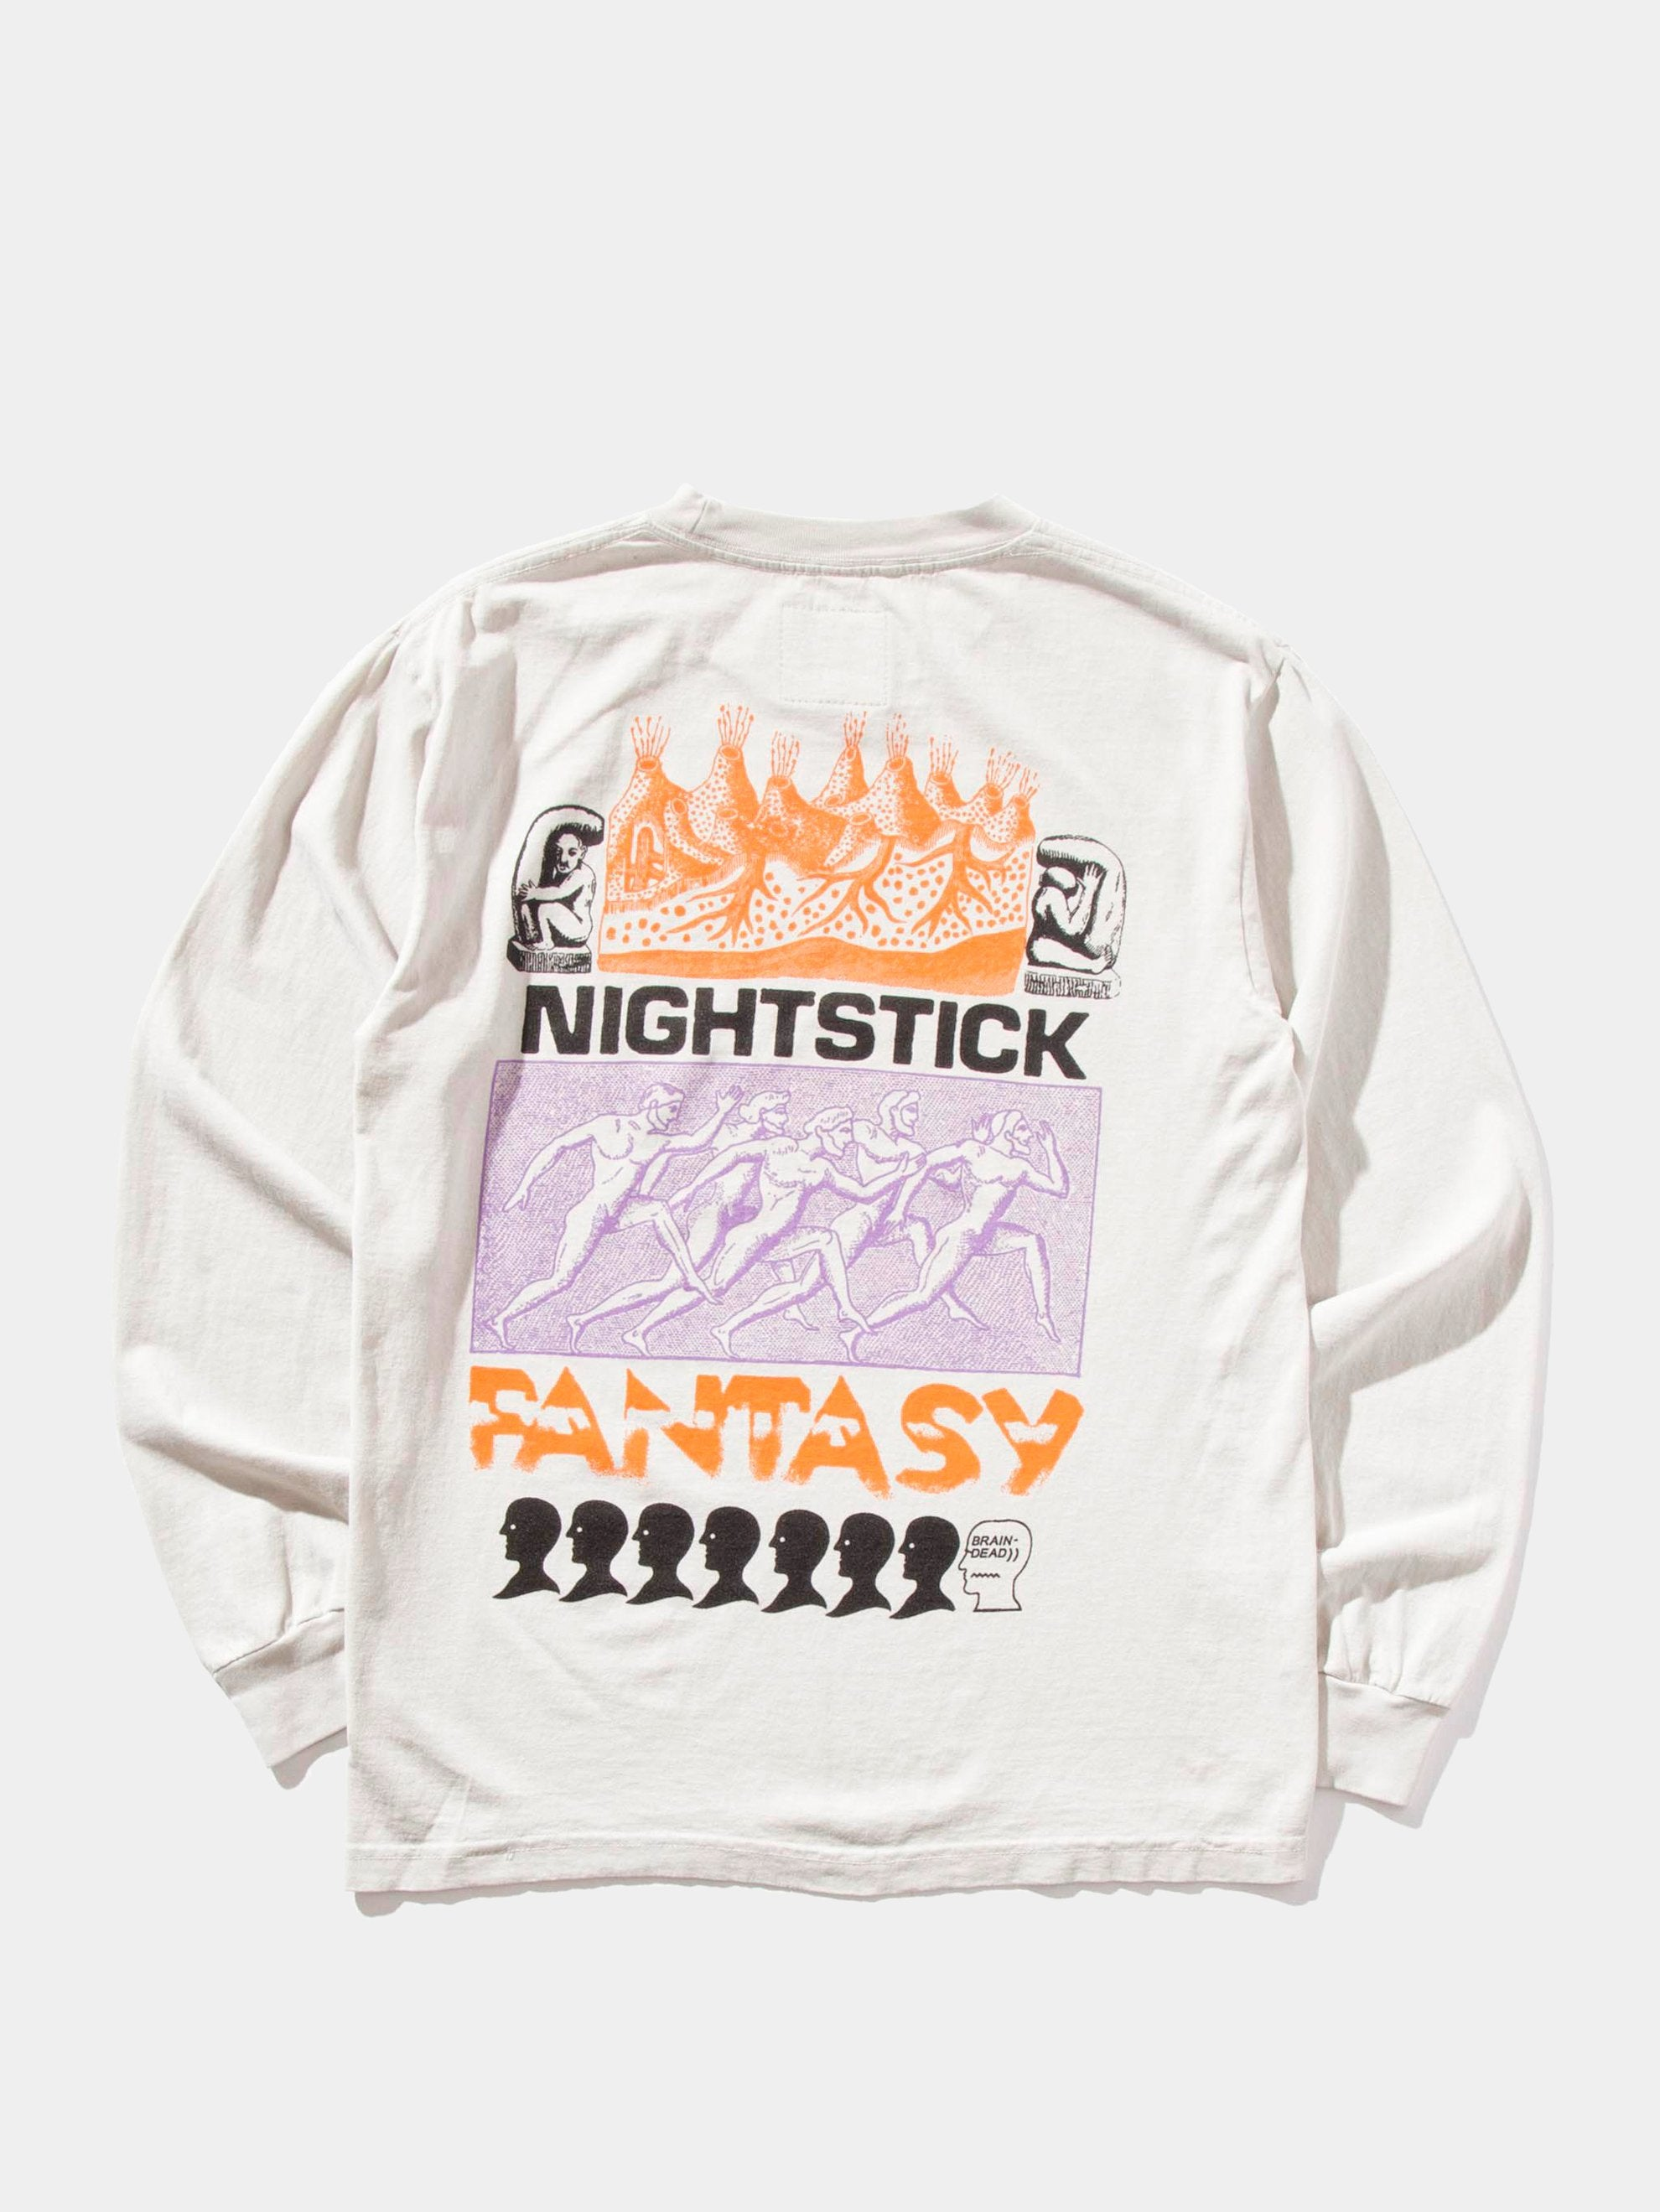 Off White Nightstick Fantasy Long Sleeve T-Shirt 1